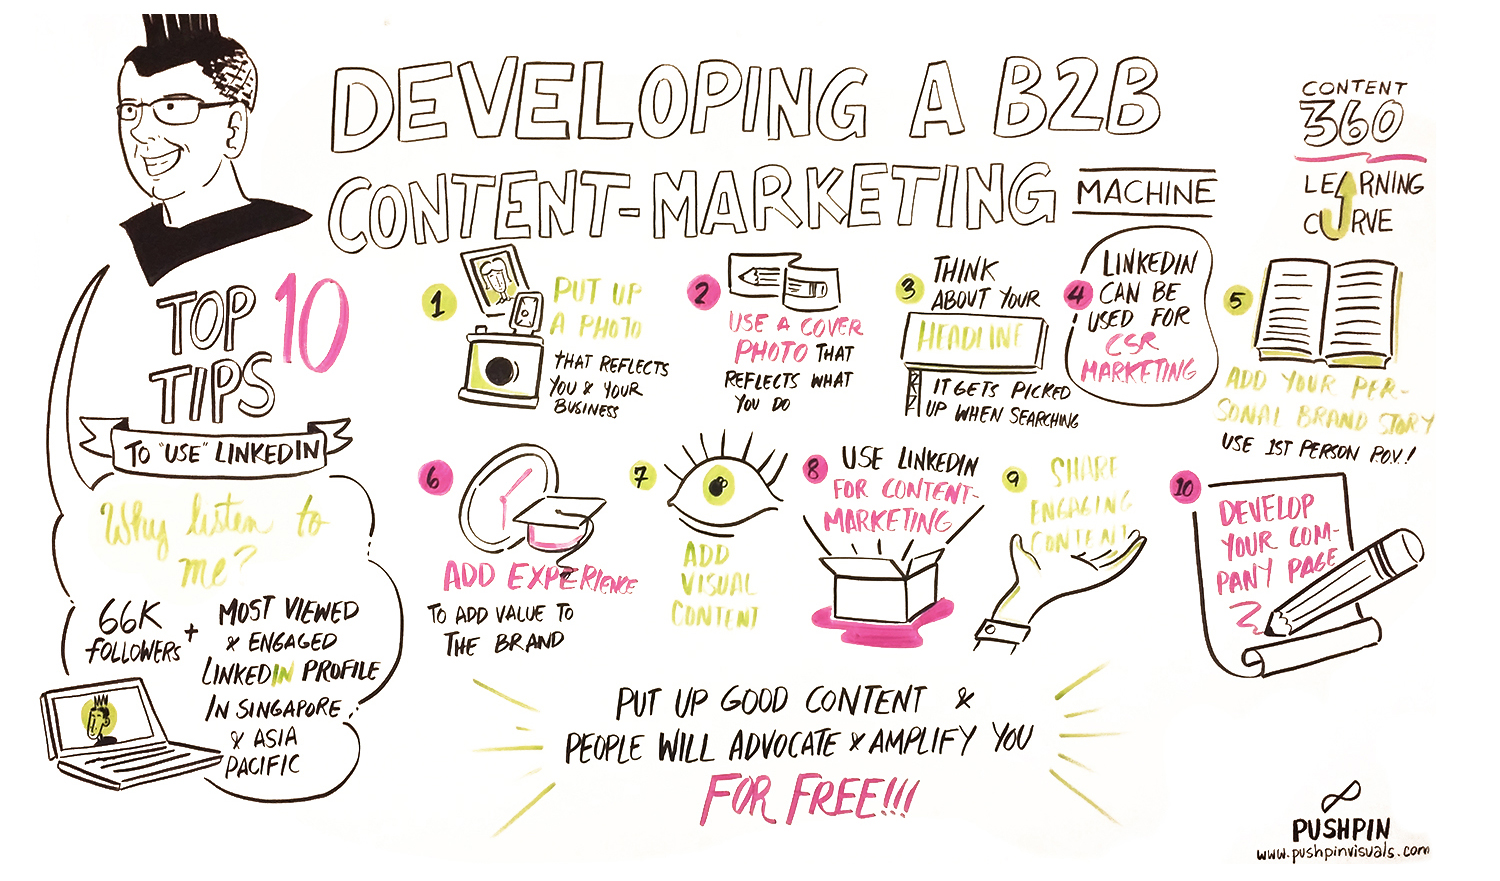 Developing-a-B2b-Content-Marketing-Machine